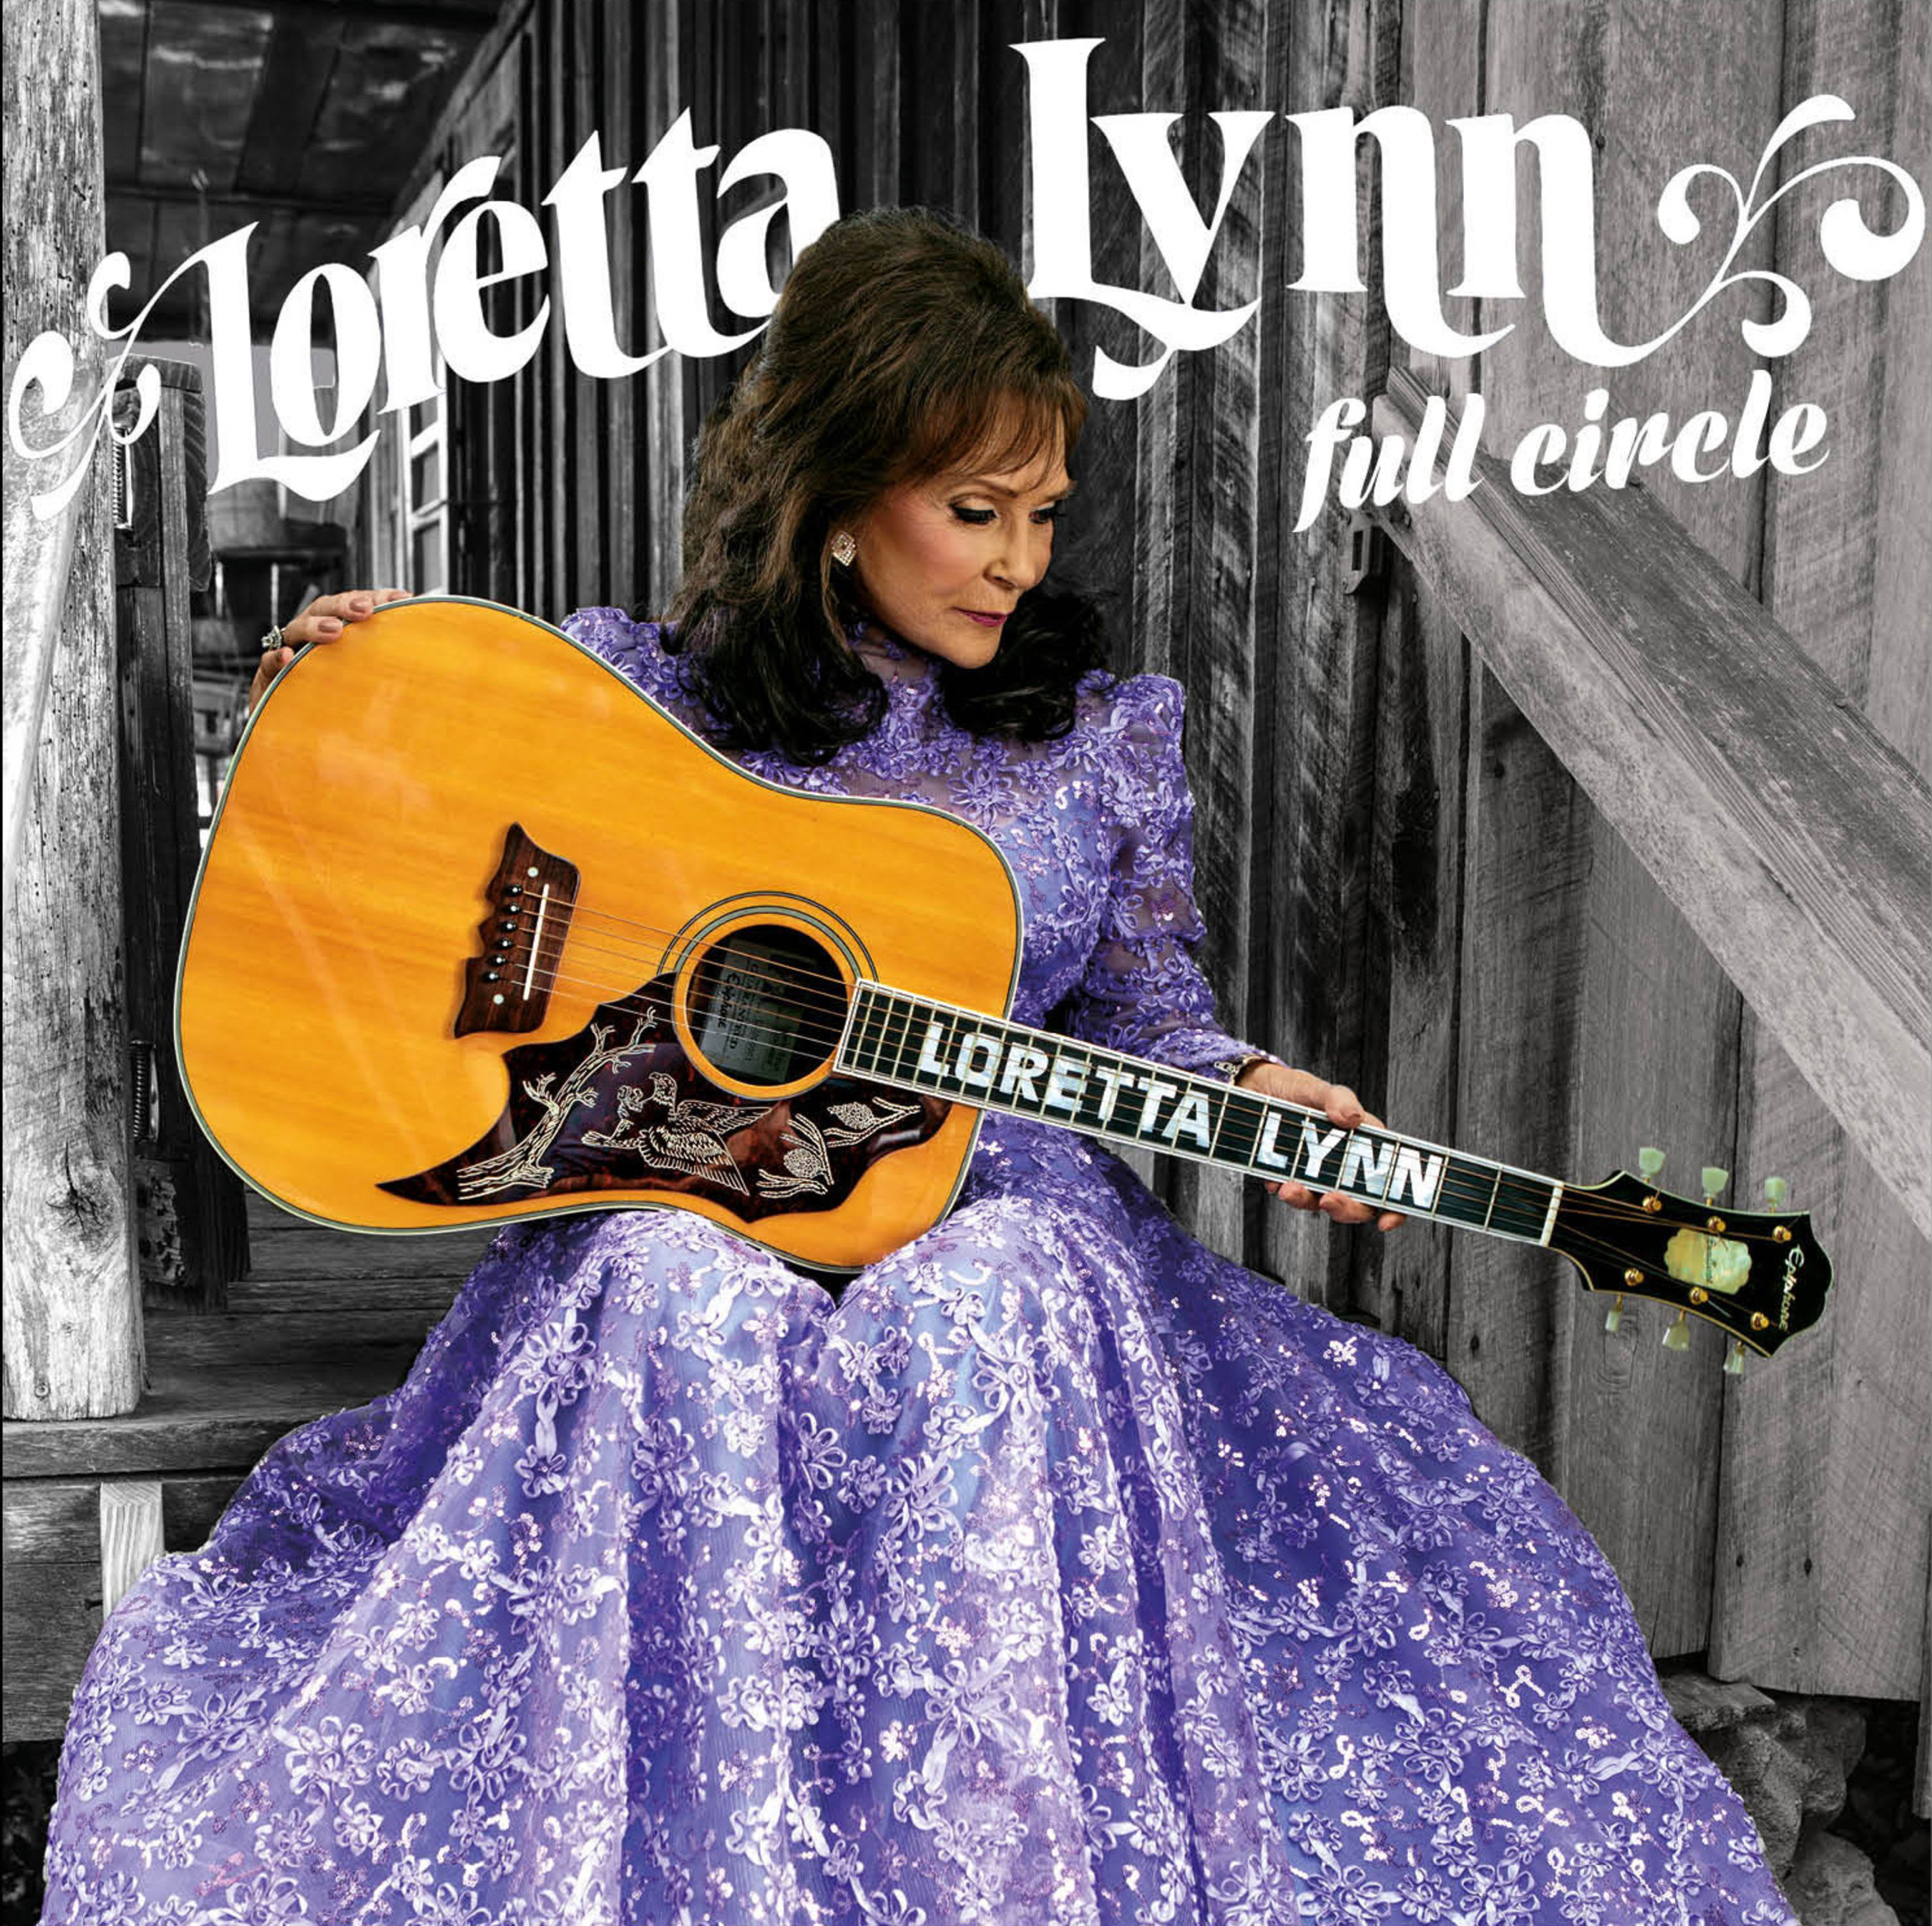 Legacy Recordings will release FULL CIRCLE, the first new studio album in over ten years from American music icon Loretta Lynn, on March 4, 2016.